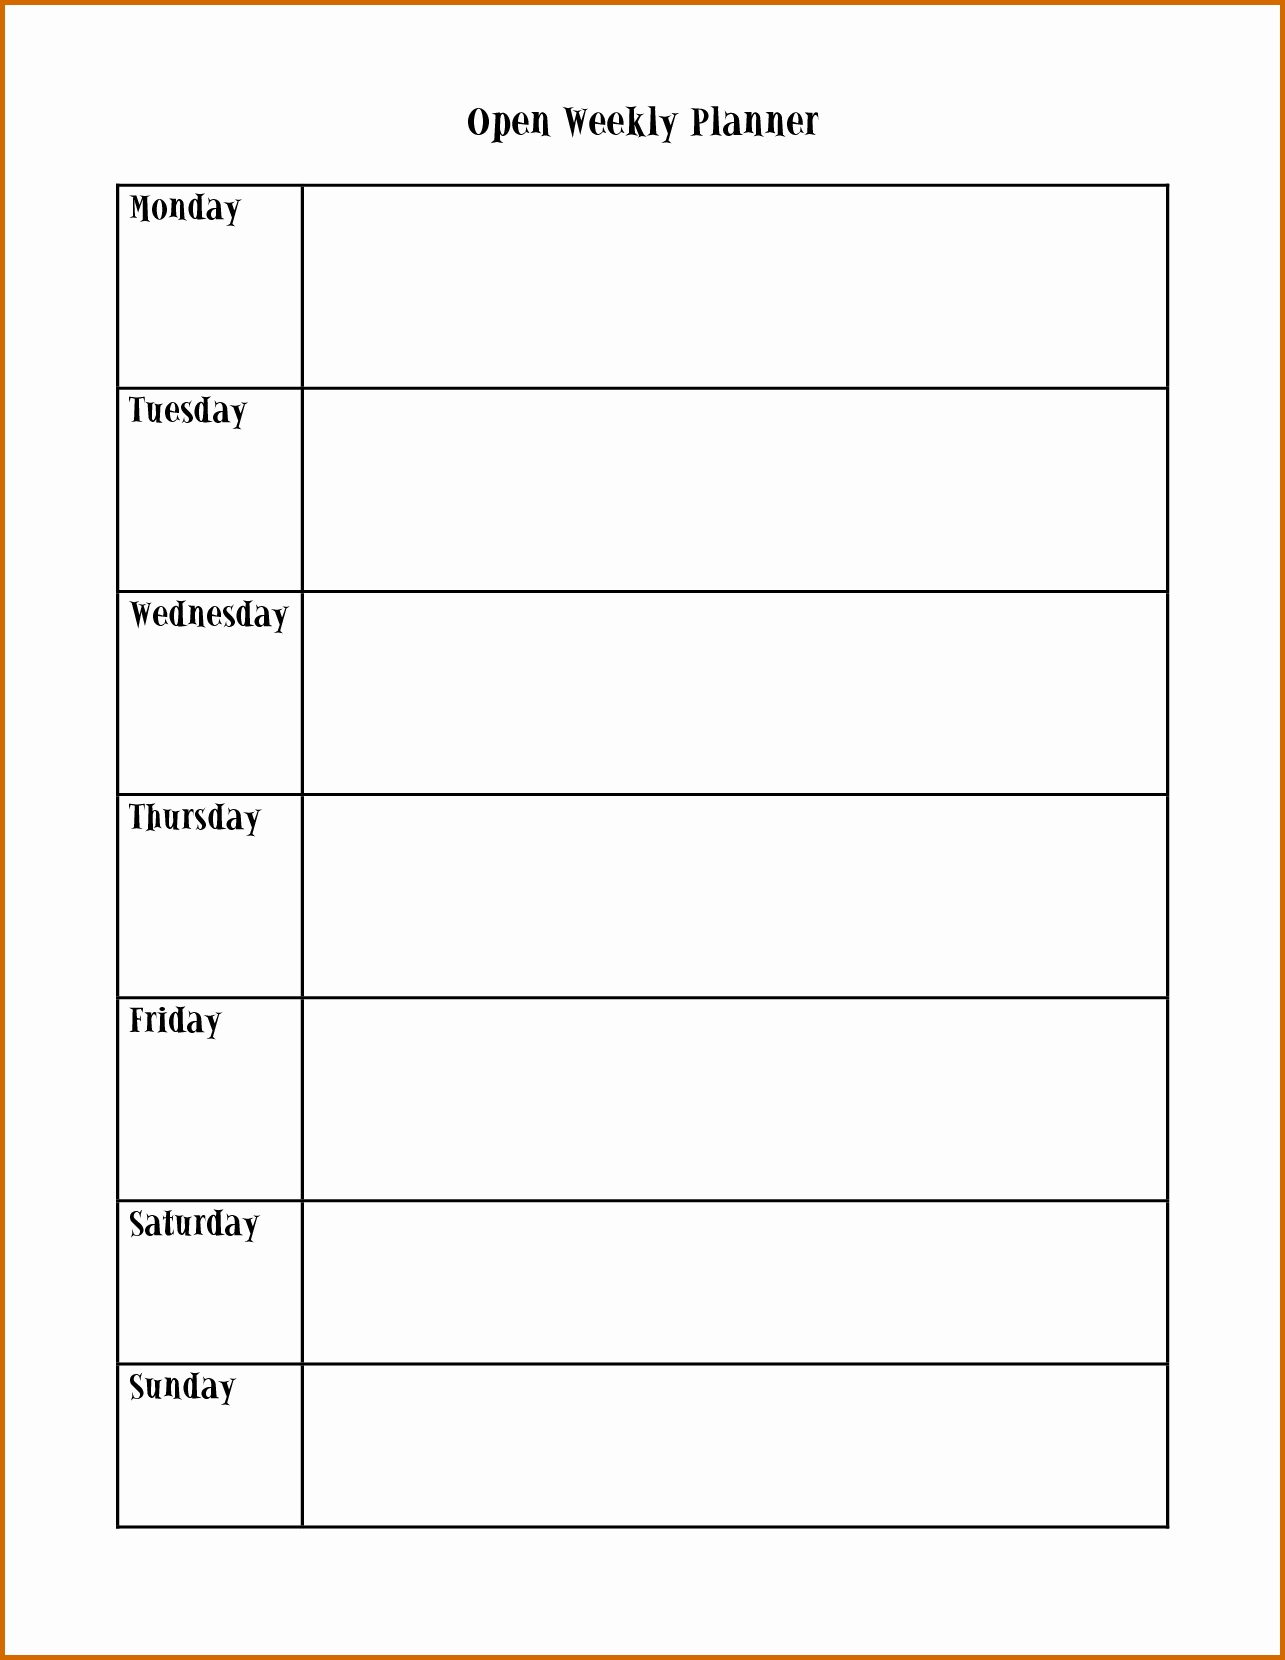 Schedule Plate Monday Through Friday Weekly Calendar Word | Smorad with Monthly Calendar Monday Through Friday